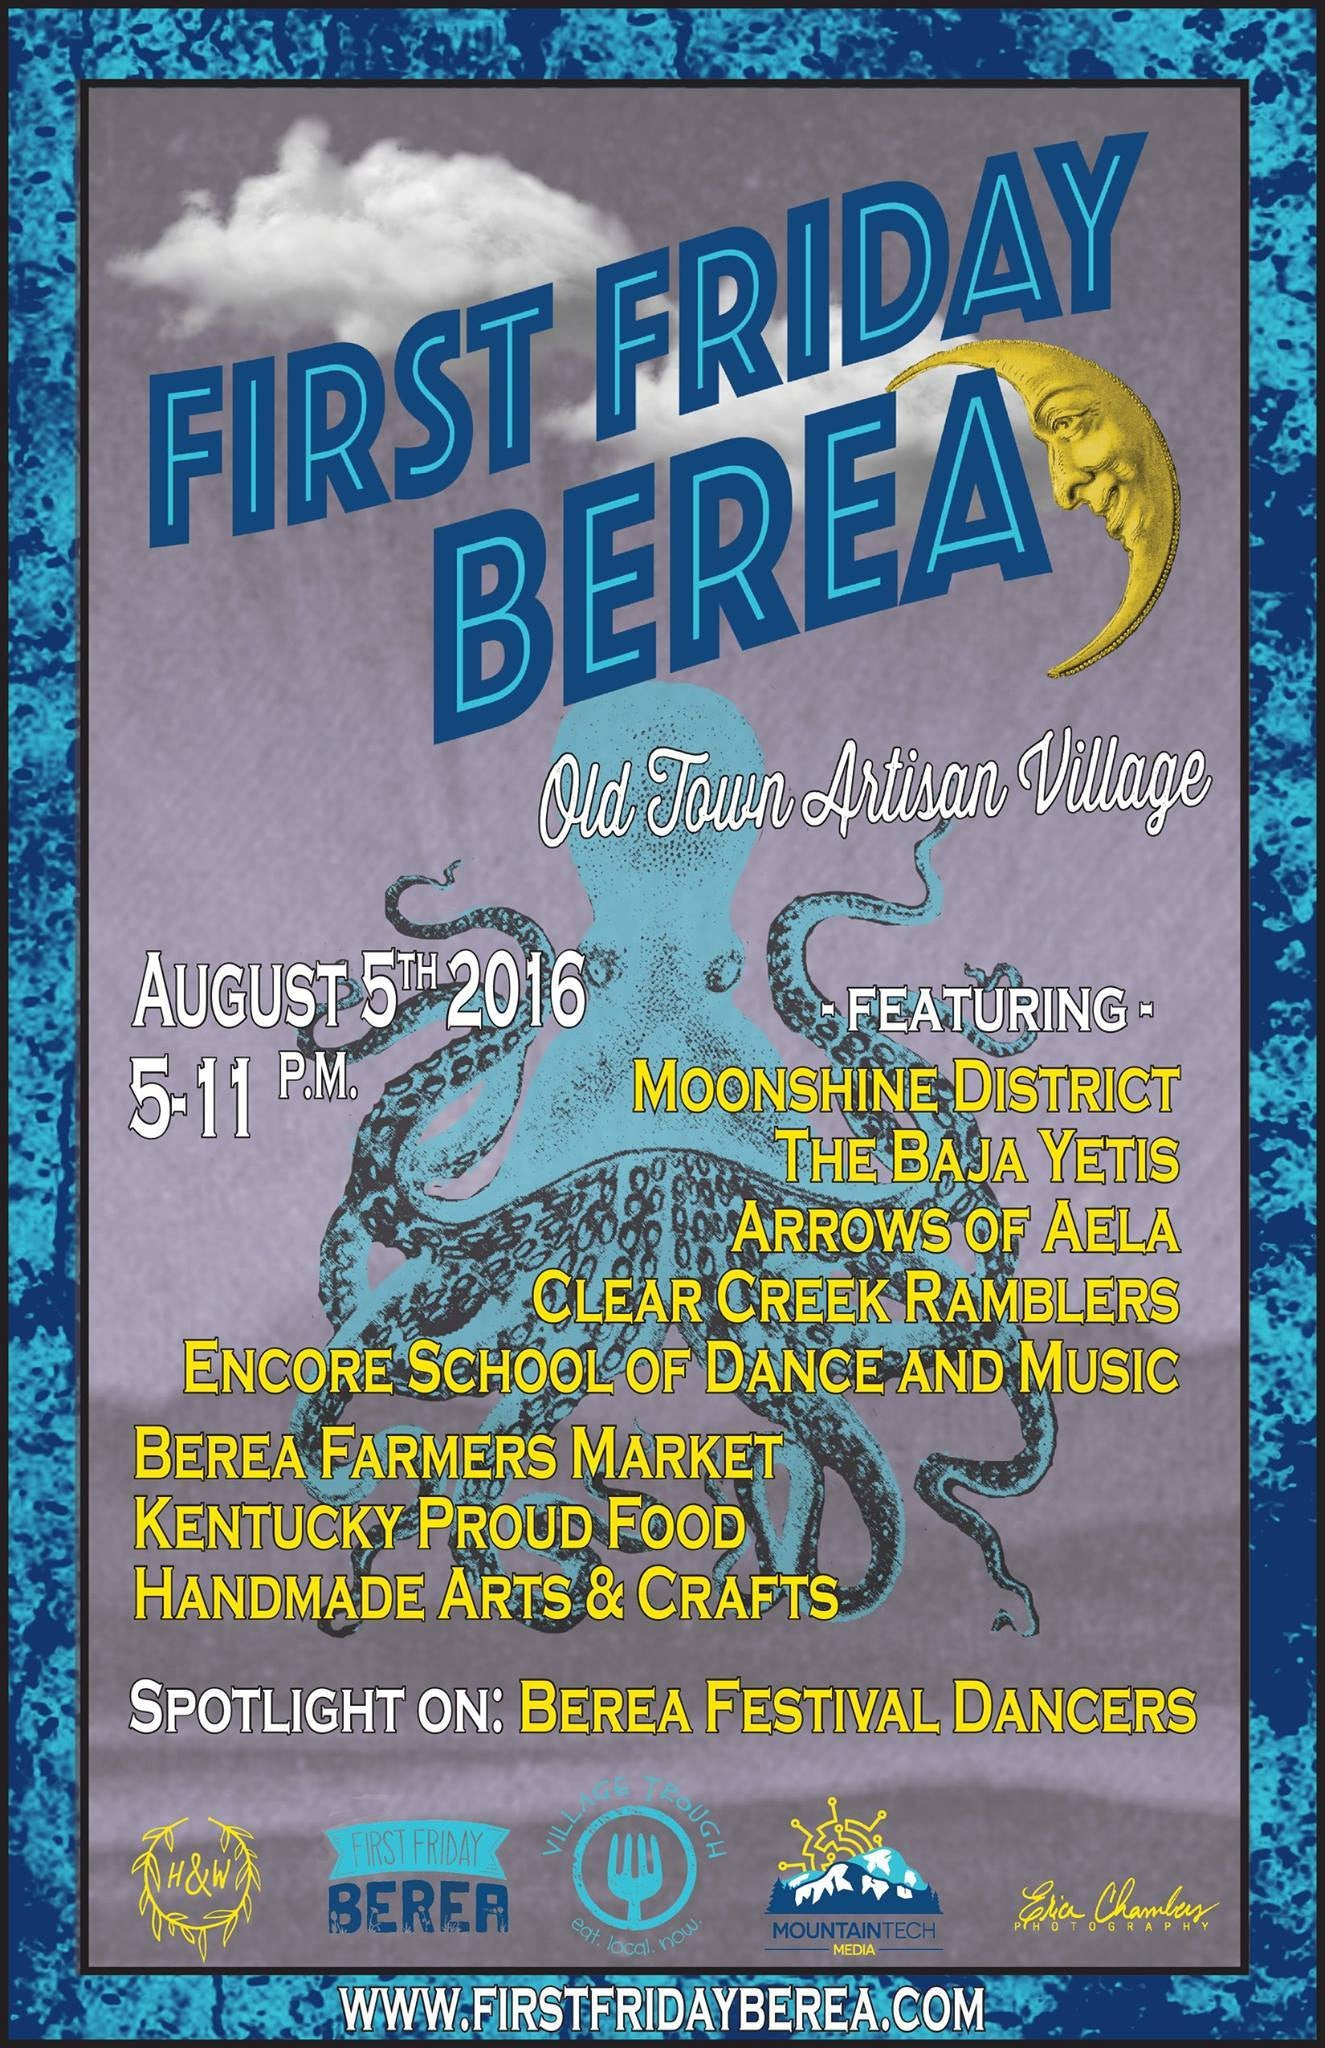 First Friday Berea